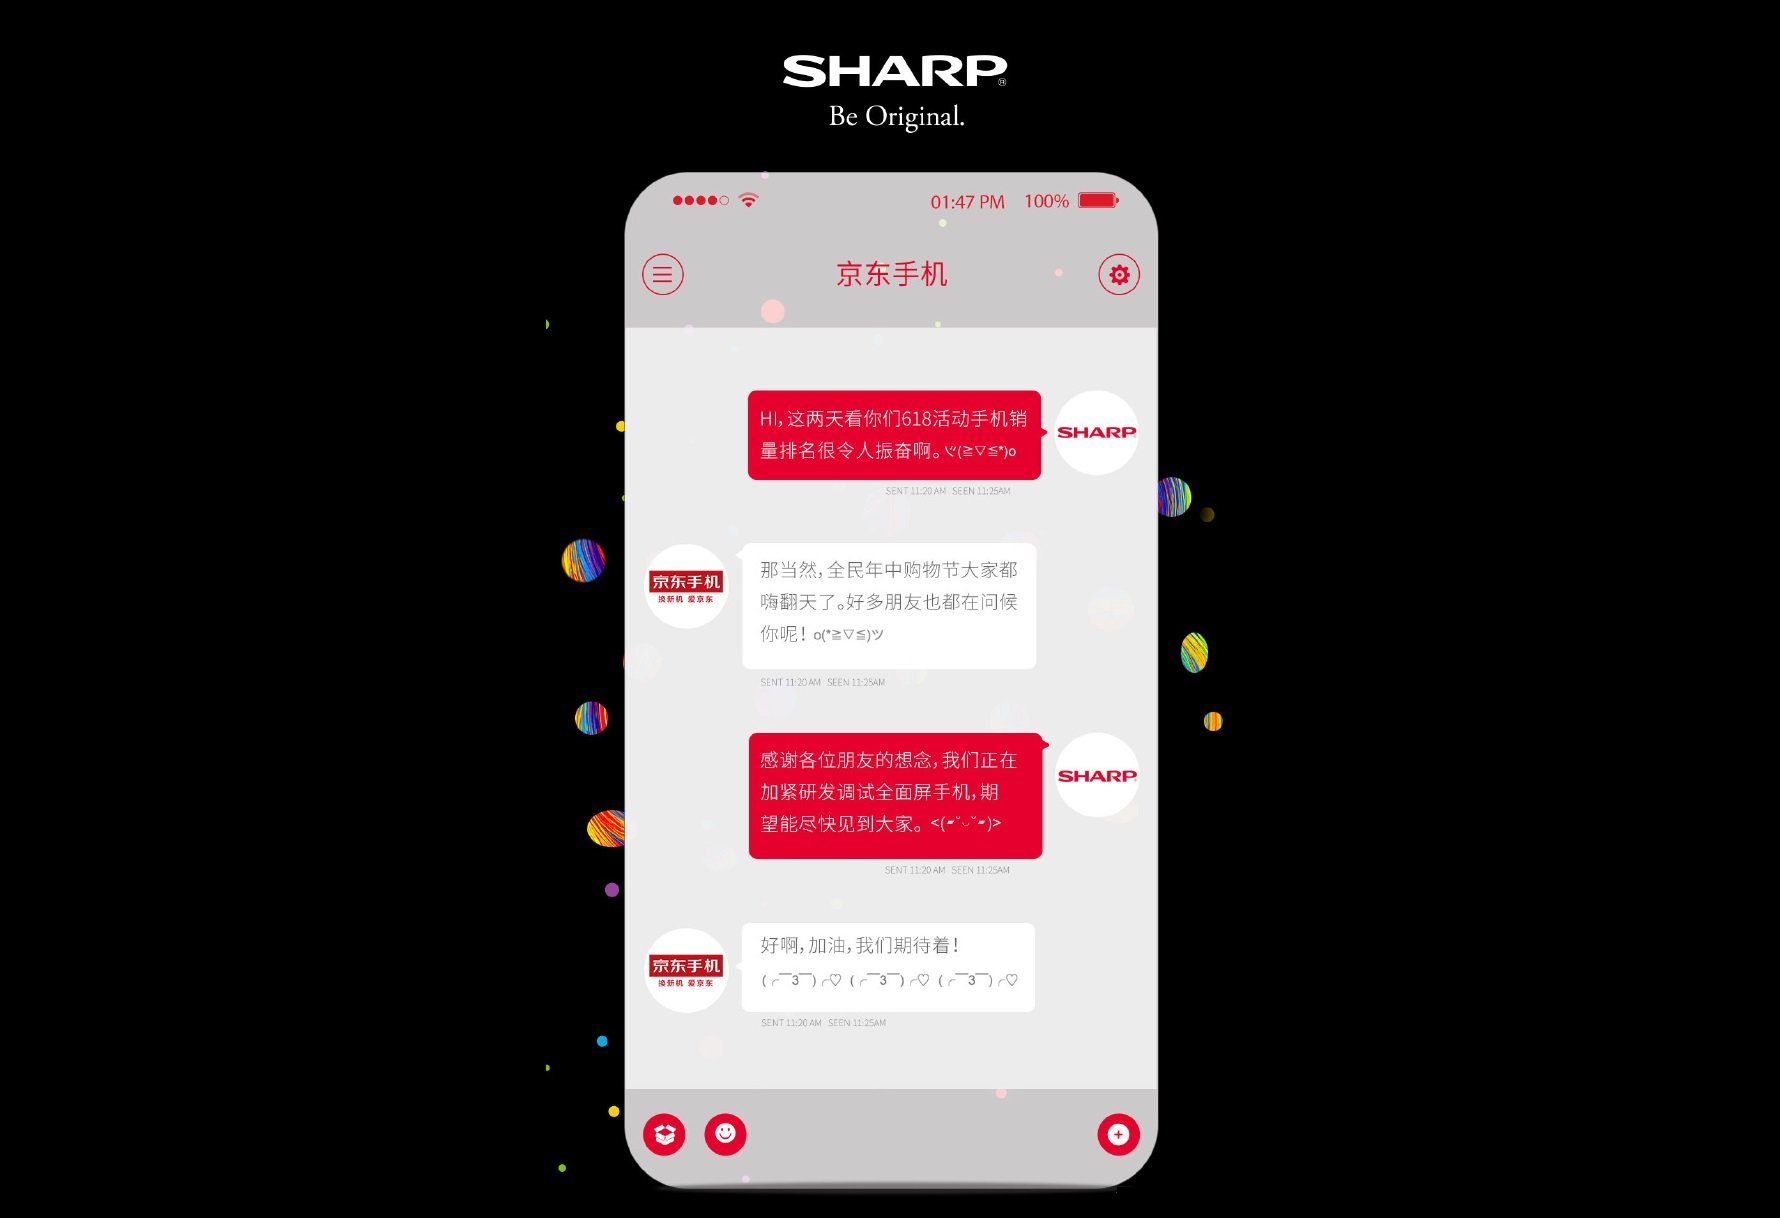 sharp teaser